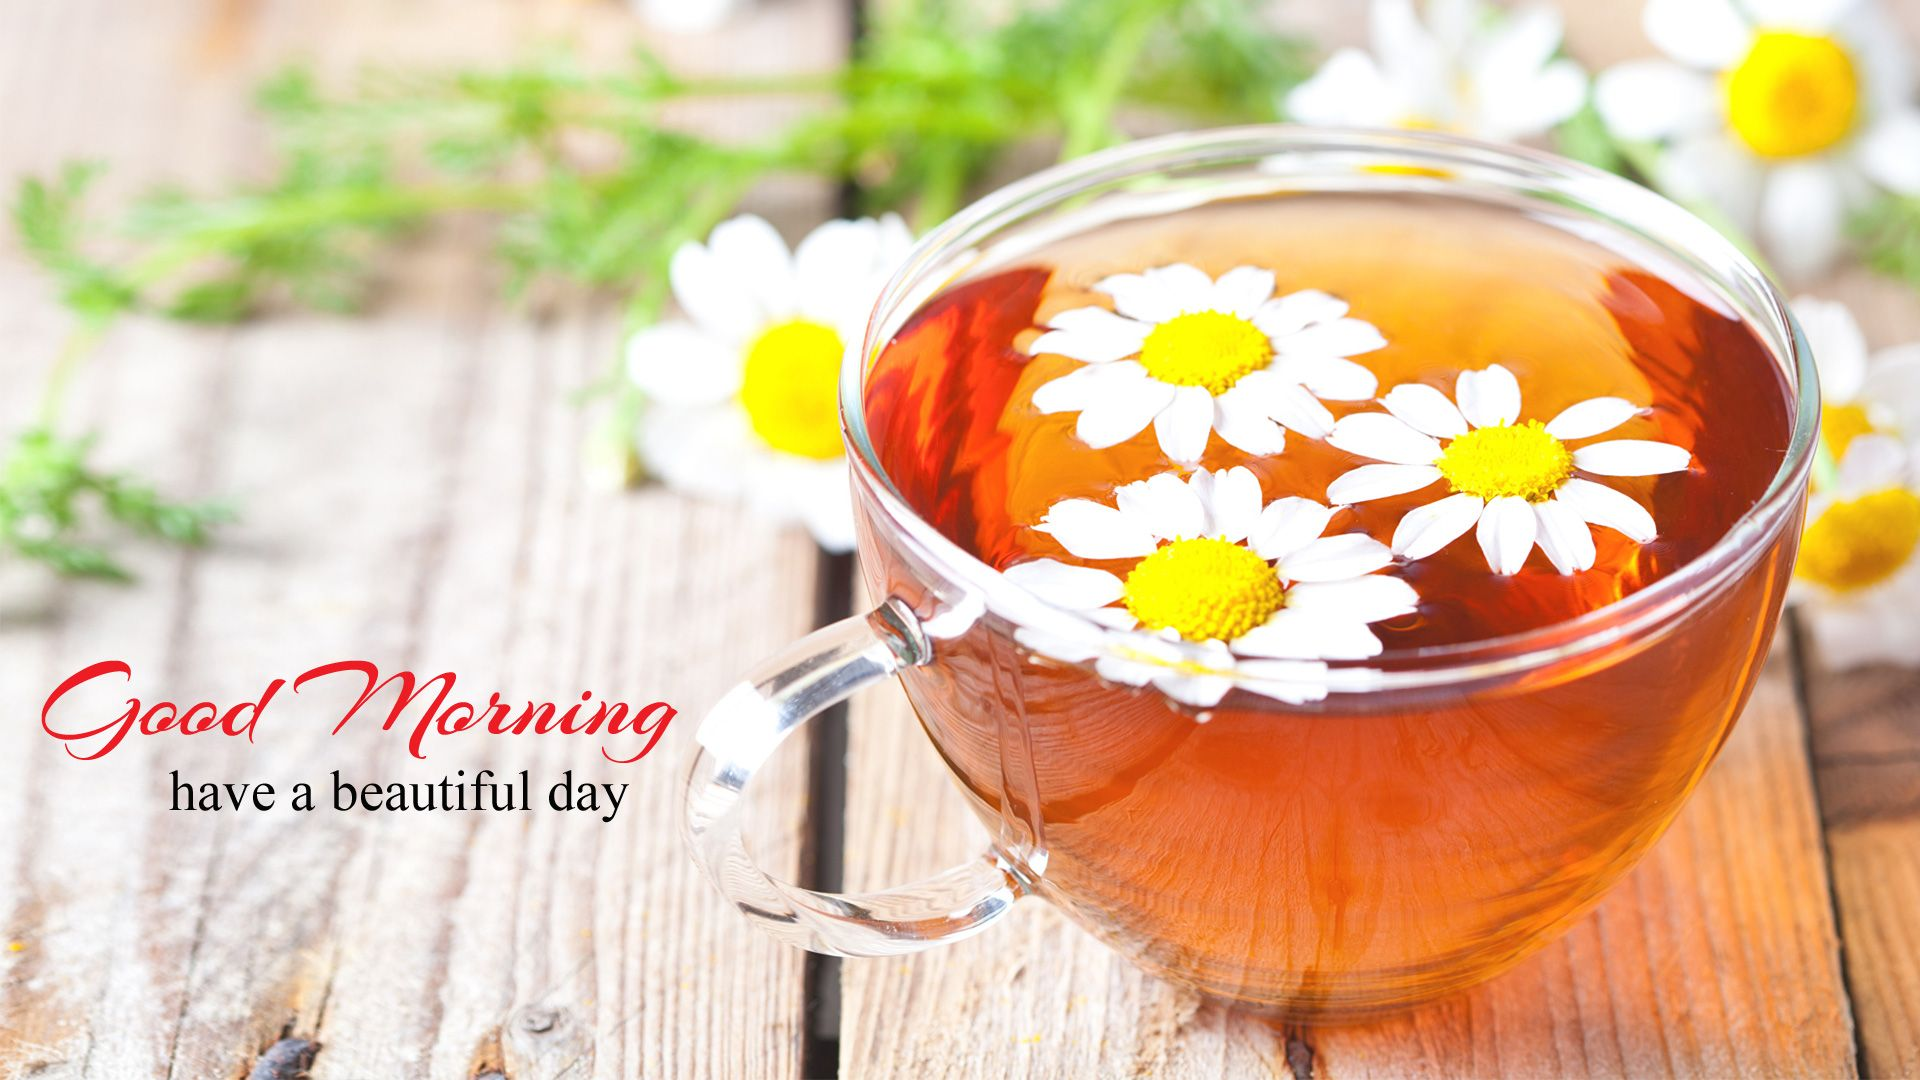 Good Morning Wallpaper with Flowers, Full HD 1920x1080 GM